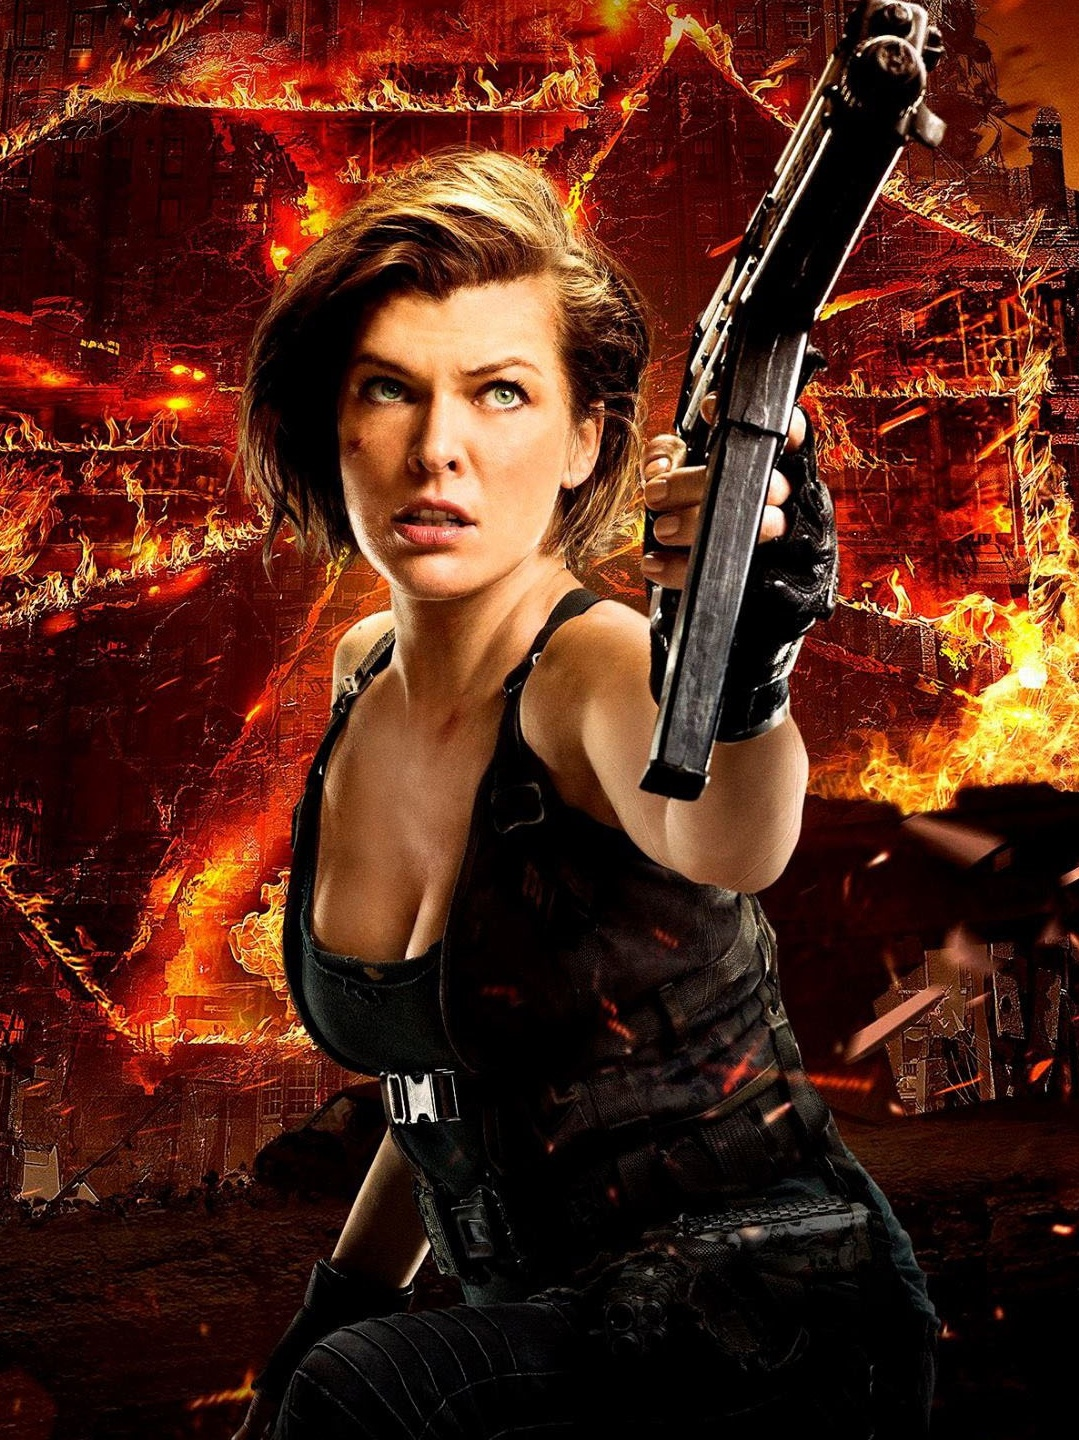 End game? Milla Jovovich plays Alice for the final time, posted on Thursday, 02 February 2017